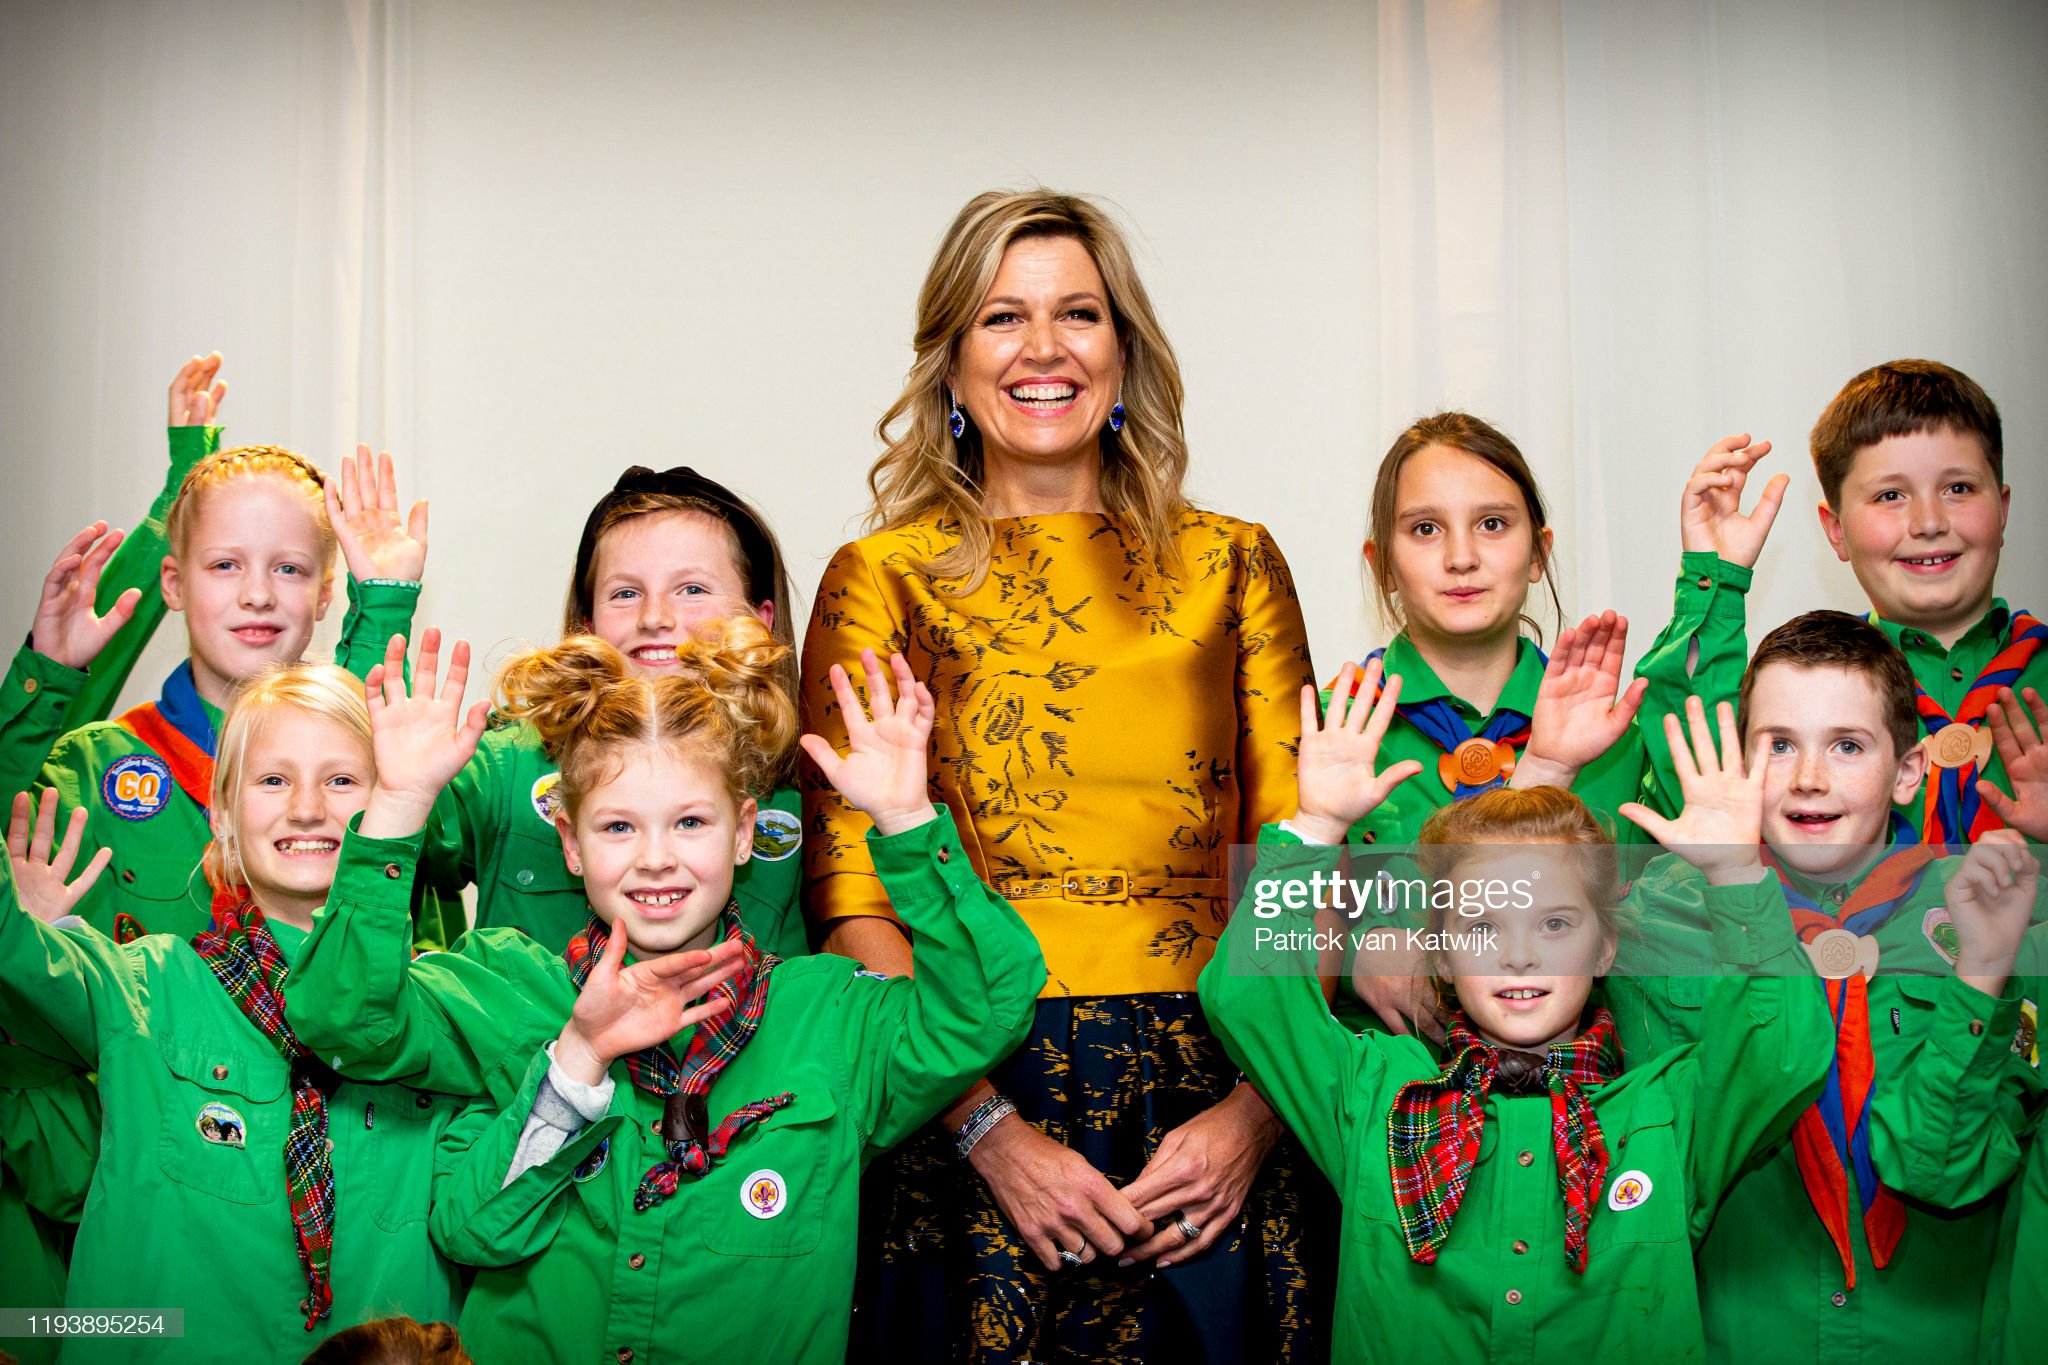 https://media.gettyimages.com/photos/queen-maxima-of-the-netherlands-during-a-visit-to-the-scouting-cubs-picture-id1193895254?s=2048x2048